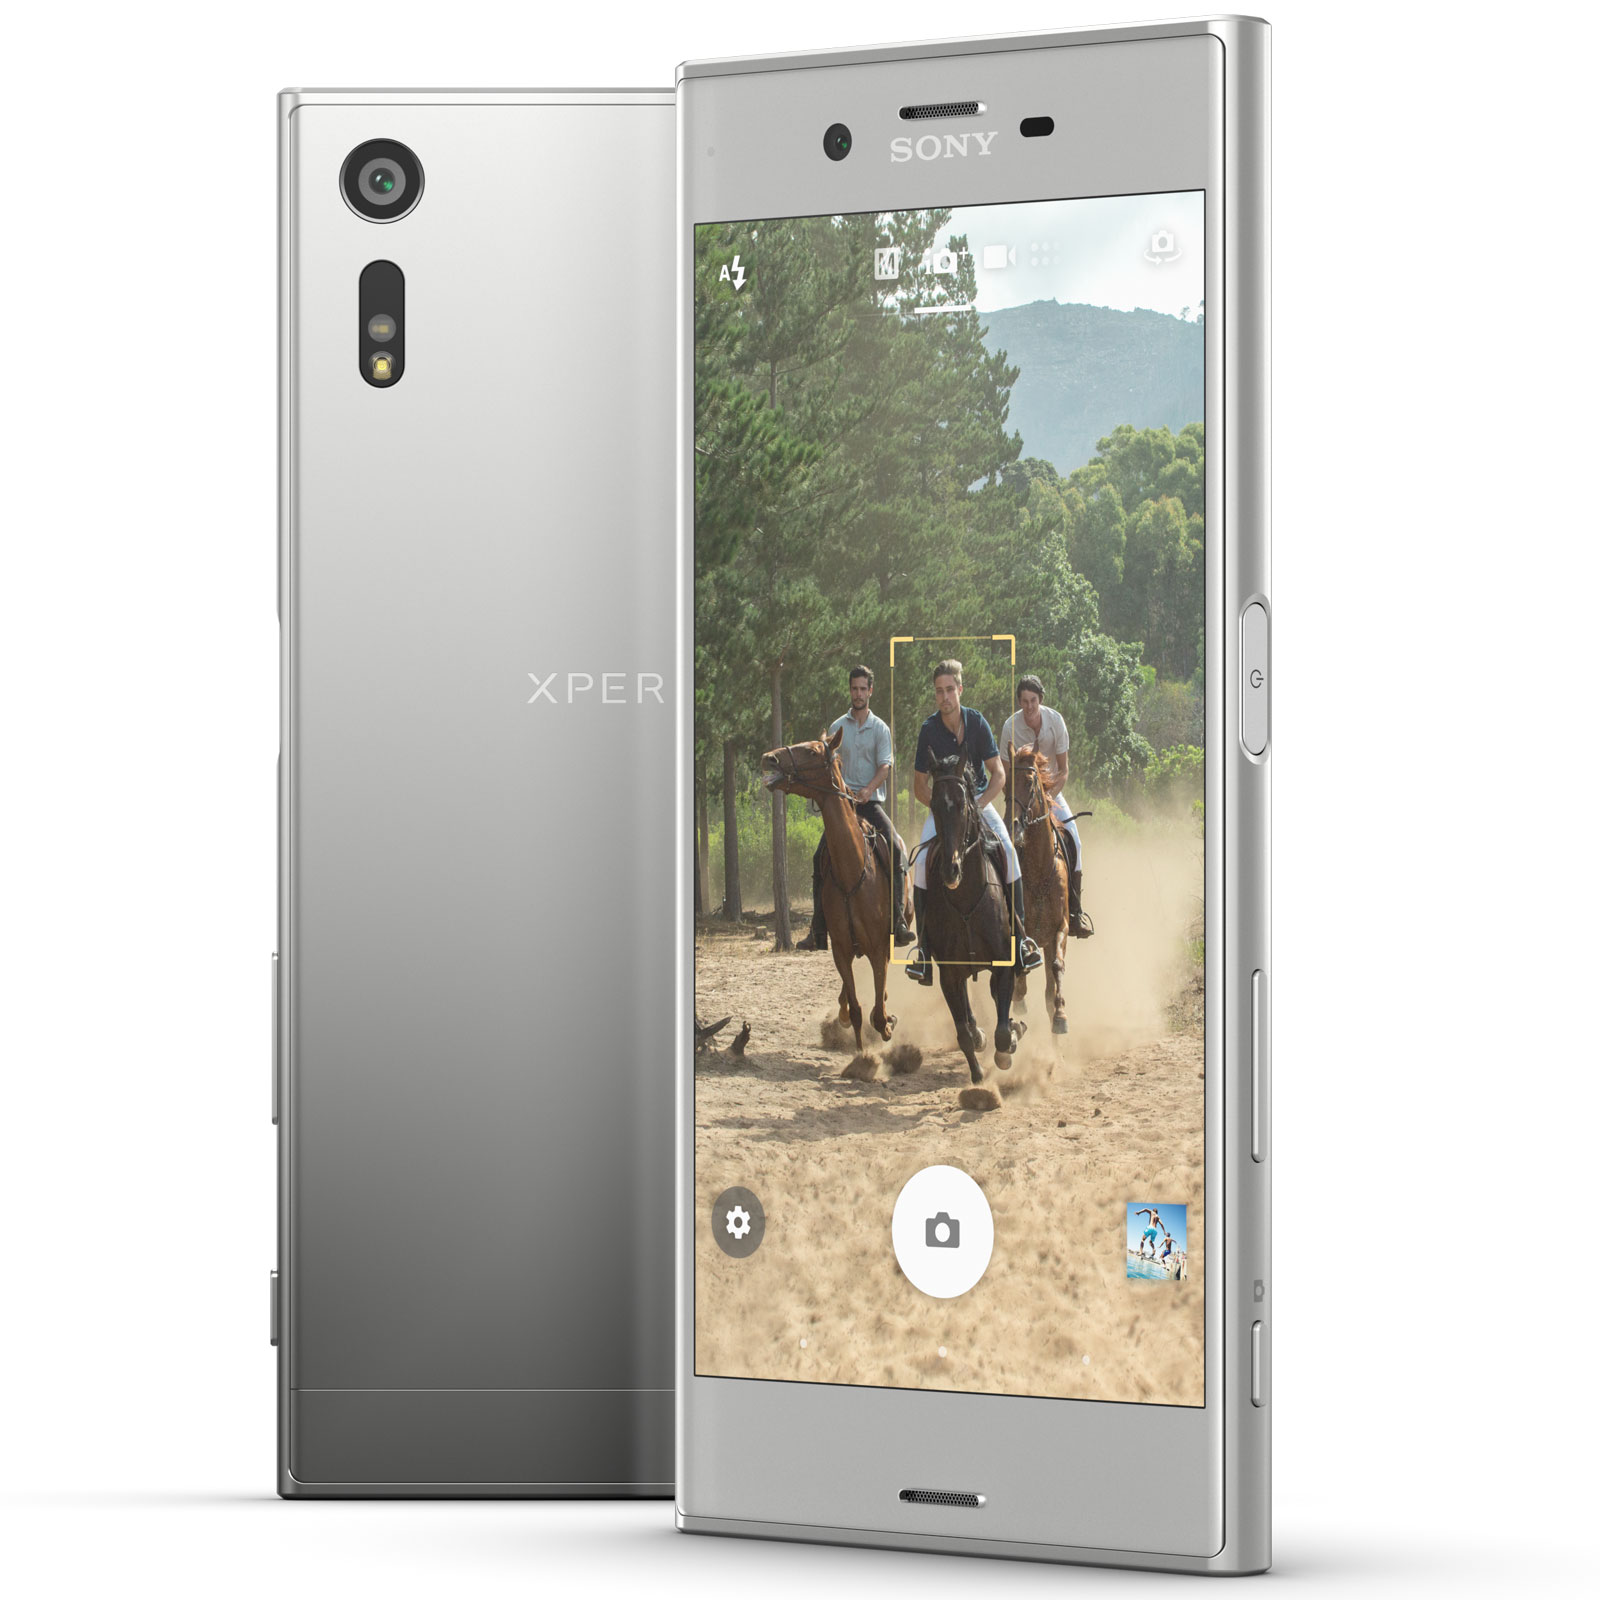 "Mobile & smartphone Sony Xperia XZ 32 Go Platine Smartphone 4G-LTE IP68 - Snapdragon 820 Quad-Core 2.15 GHz - RAM 3 Go - Ecran tactile 5.2"" 1080 x 1920 - 32 Go - NFC/Bluetooth 4.2 - 2900 mAh - Android 6.0"